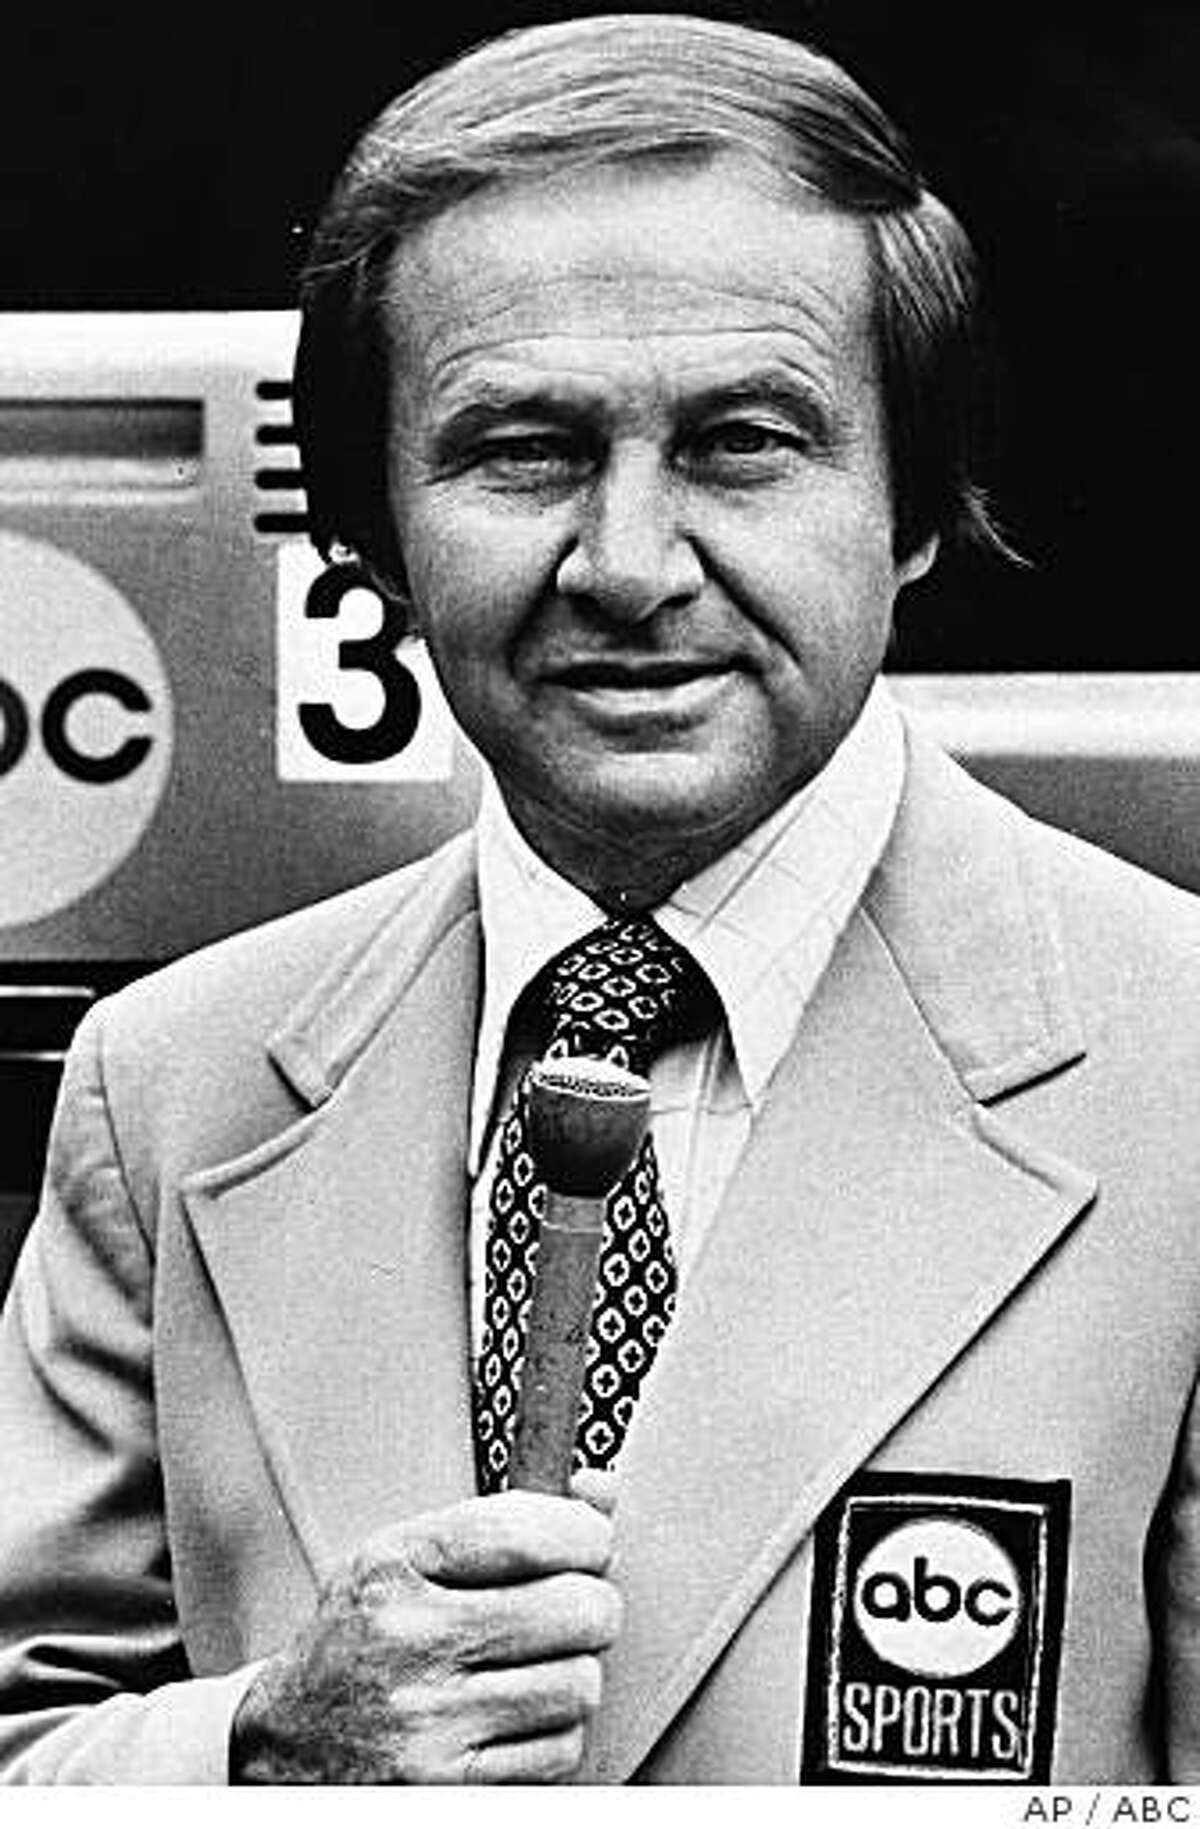 **FILE**This 1980 file photo originally from ABC-TV shows Jim McKay. McKay, the veteran and eloquent sportscaster thrust into the role of telling Americans about the tragedy at the 1972 Munich Olympics, died Saturday, June 7, 2008. He was 86.(AP Photo/ABC)